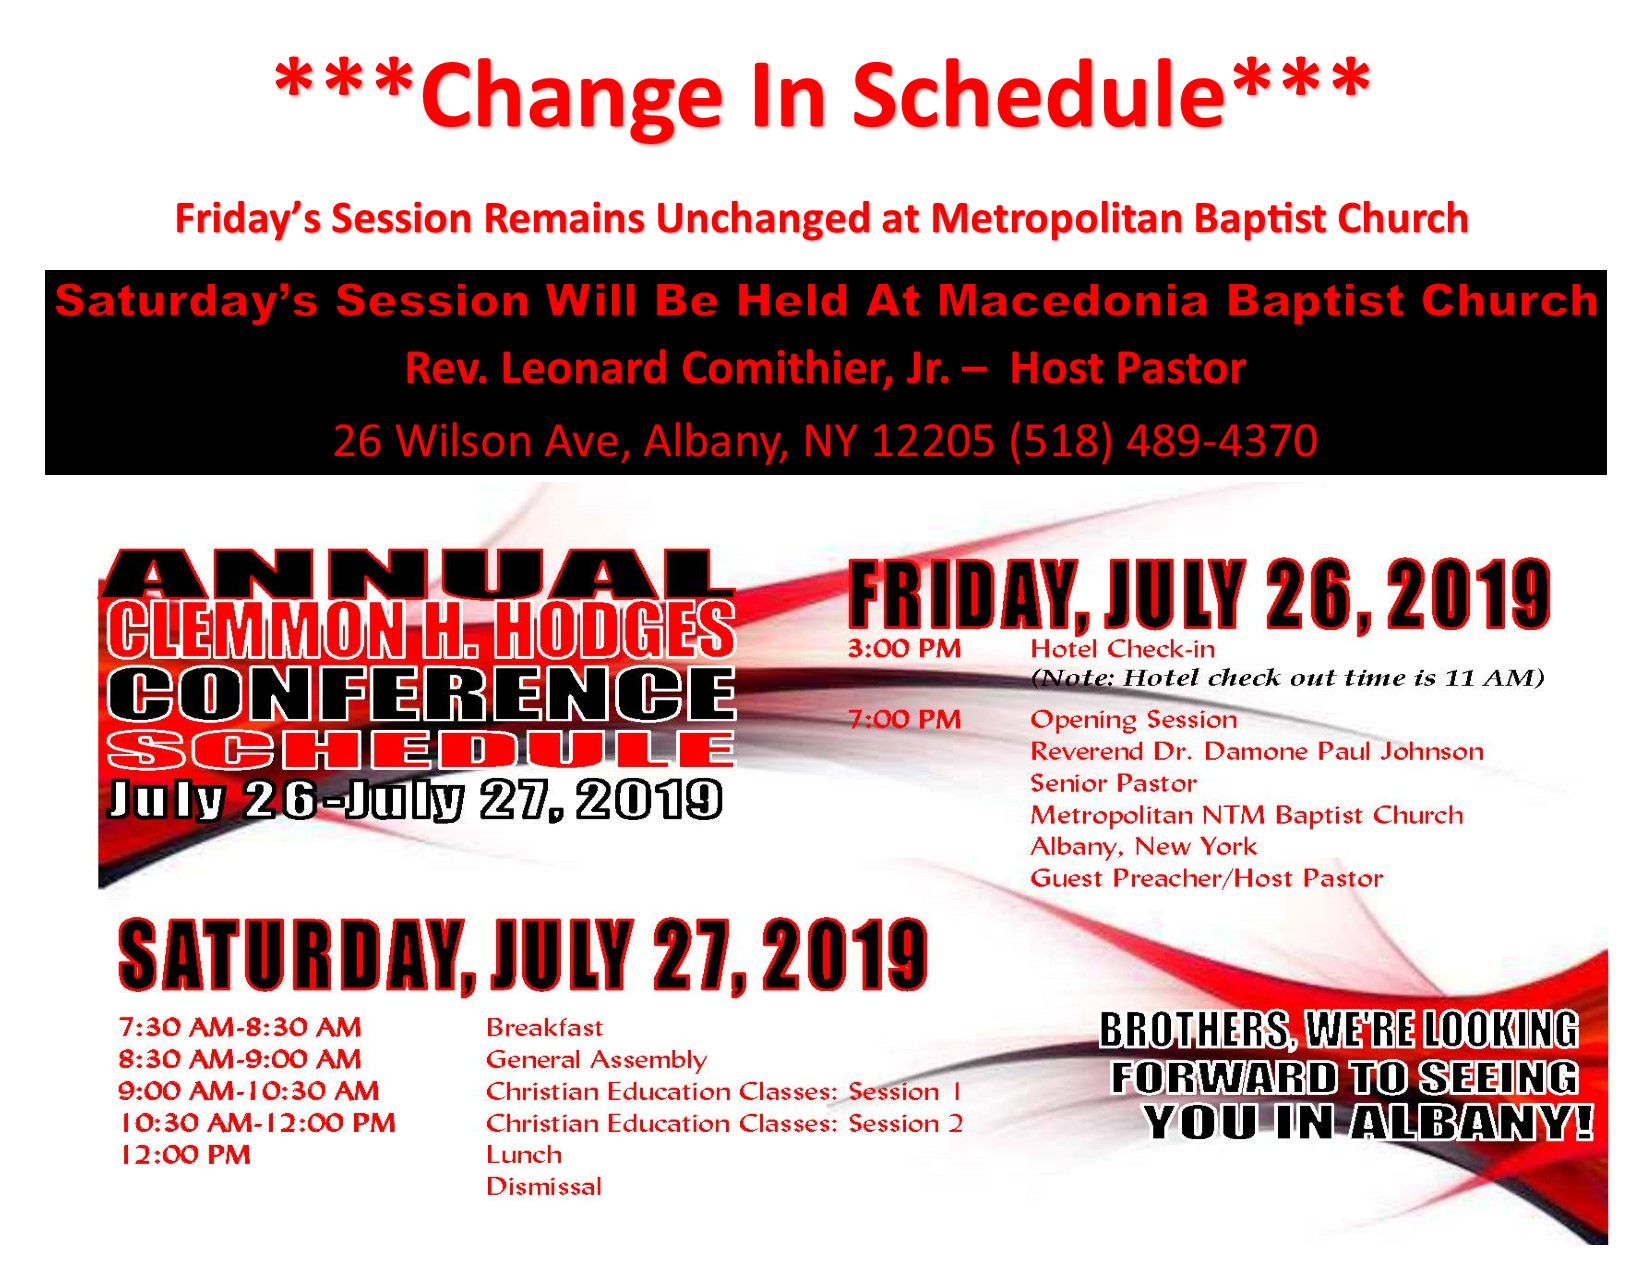 Layman Clemon Hodge Conference Change In Schedule